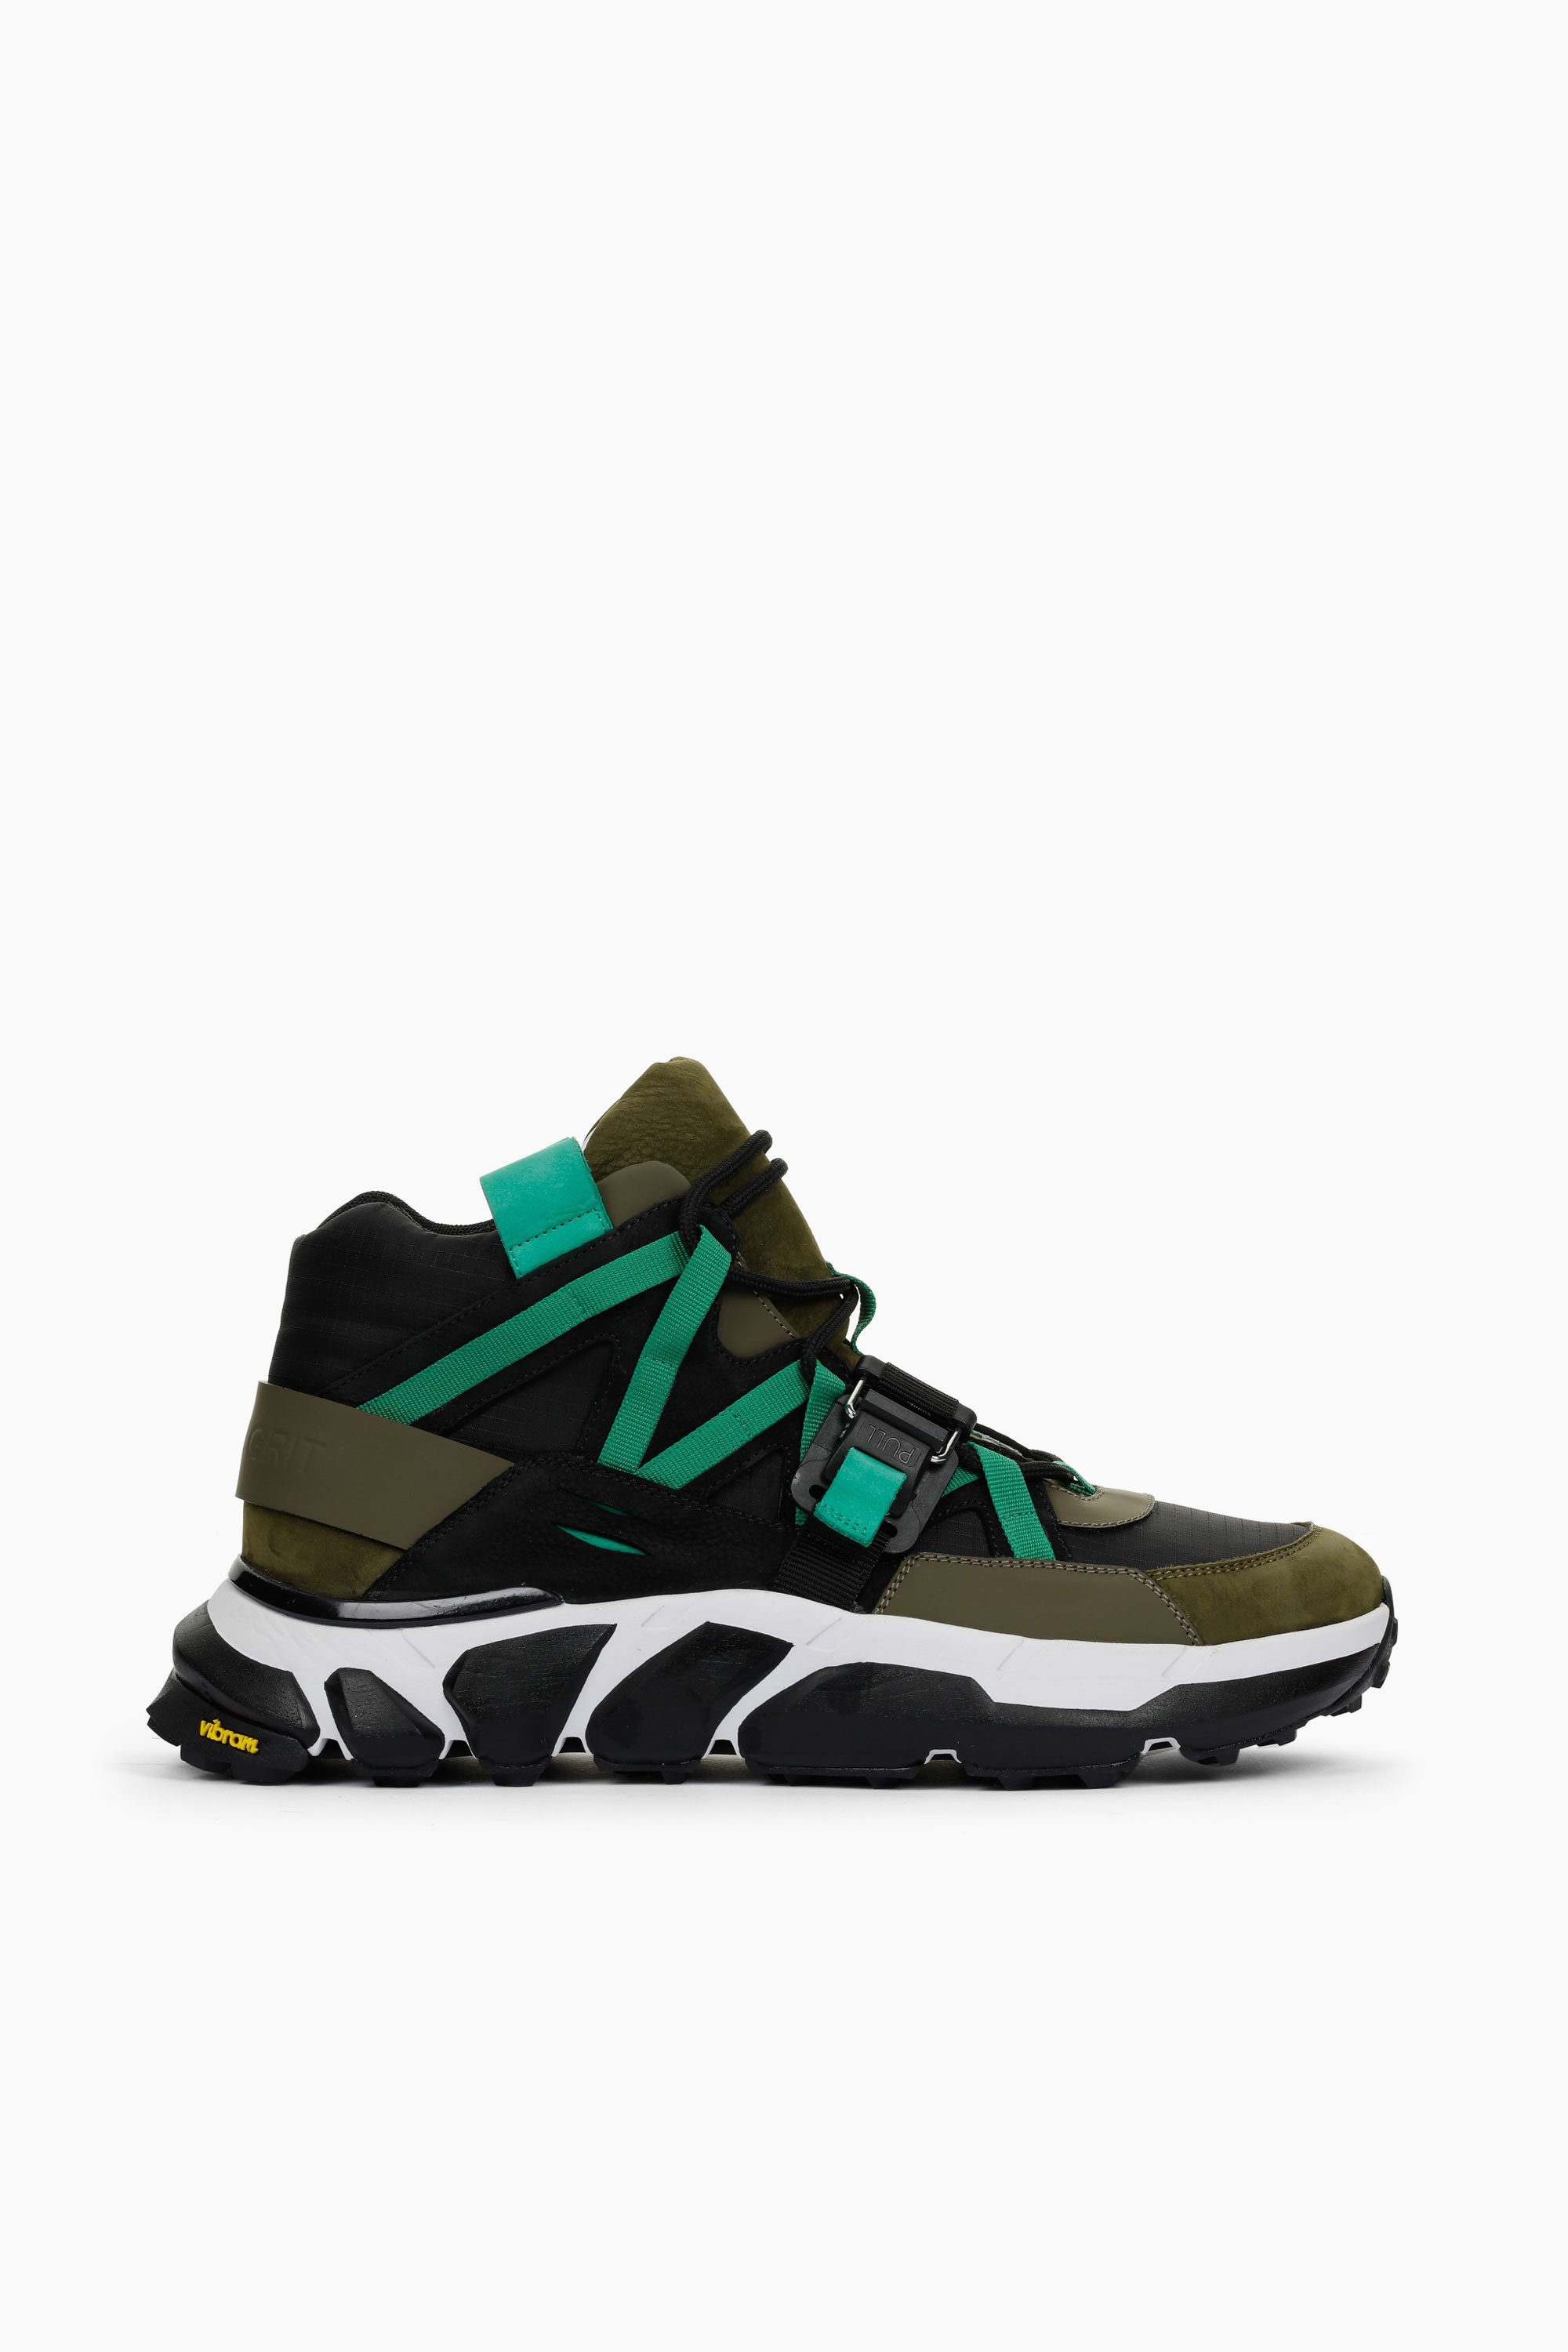 Soho Grit Leathers THE ARCHER HIGH GREEN